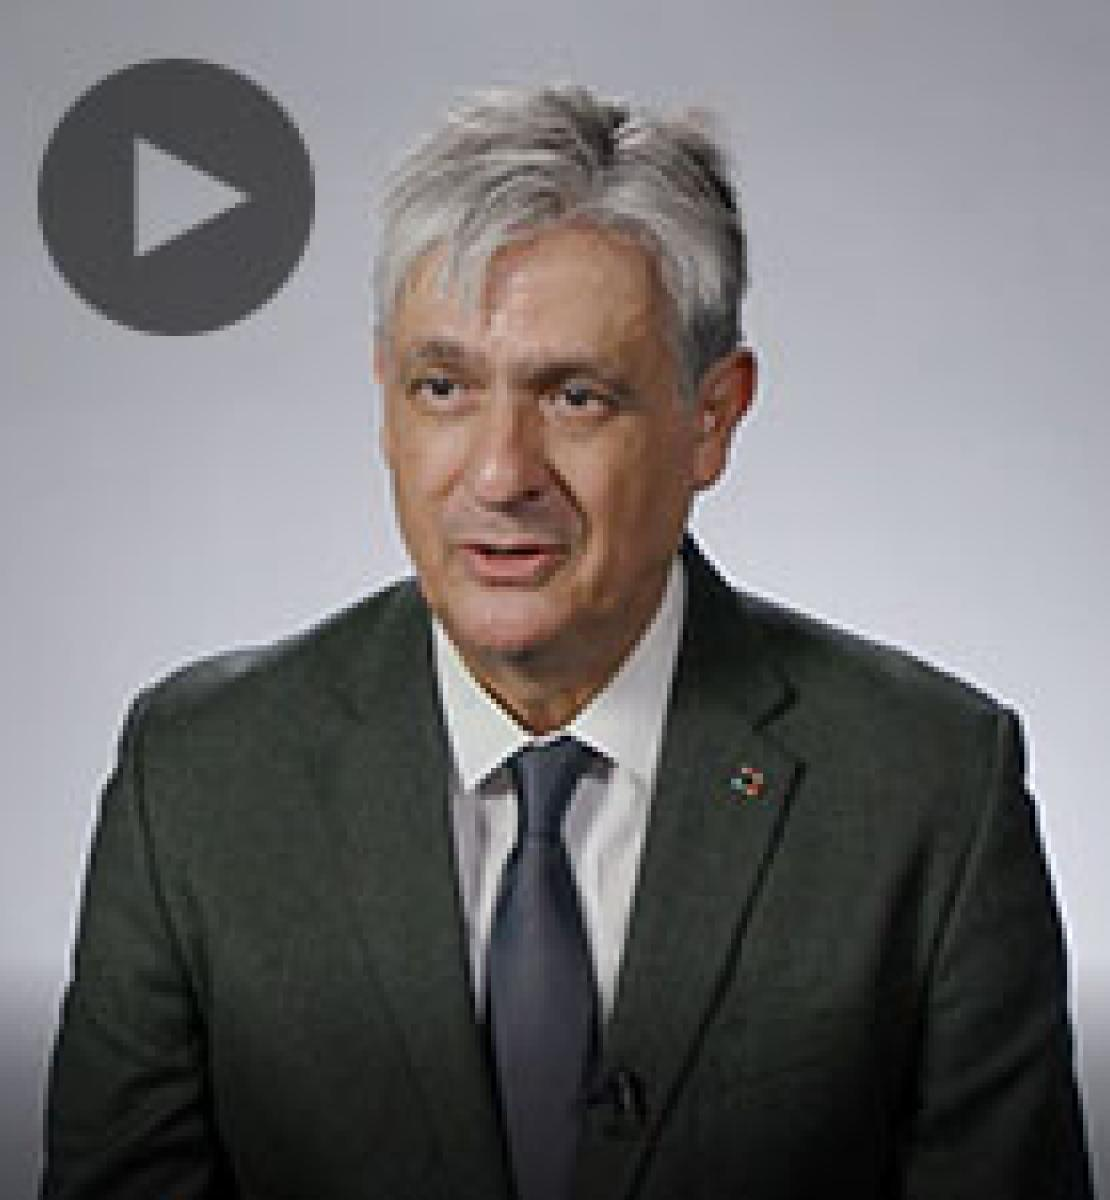 Screenshot from video message shows Resident Coordinator, Antonio Molpeceres